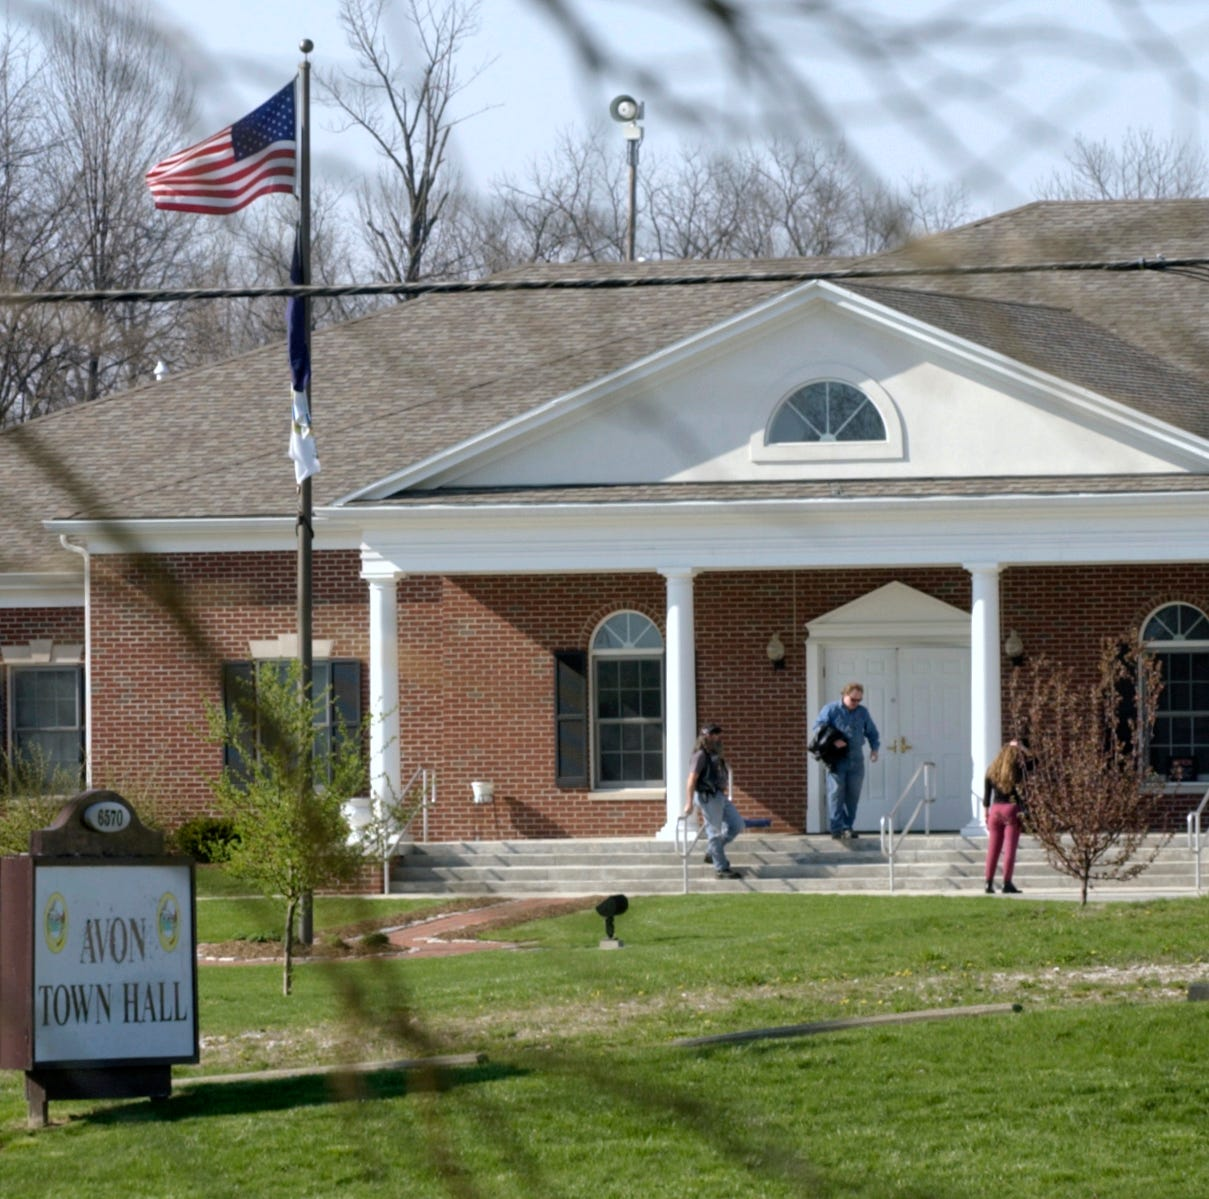 Tensions rise in Avon over senior living, storage unit proposal